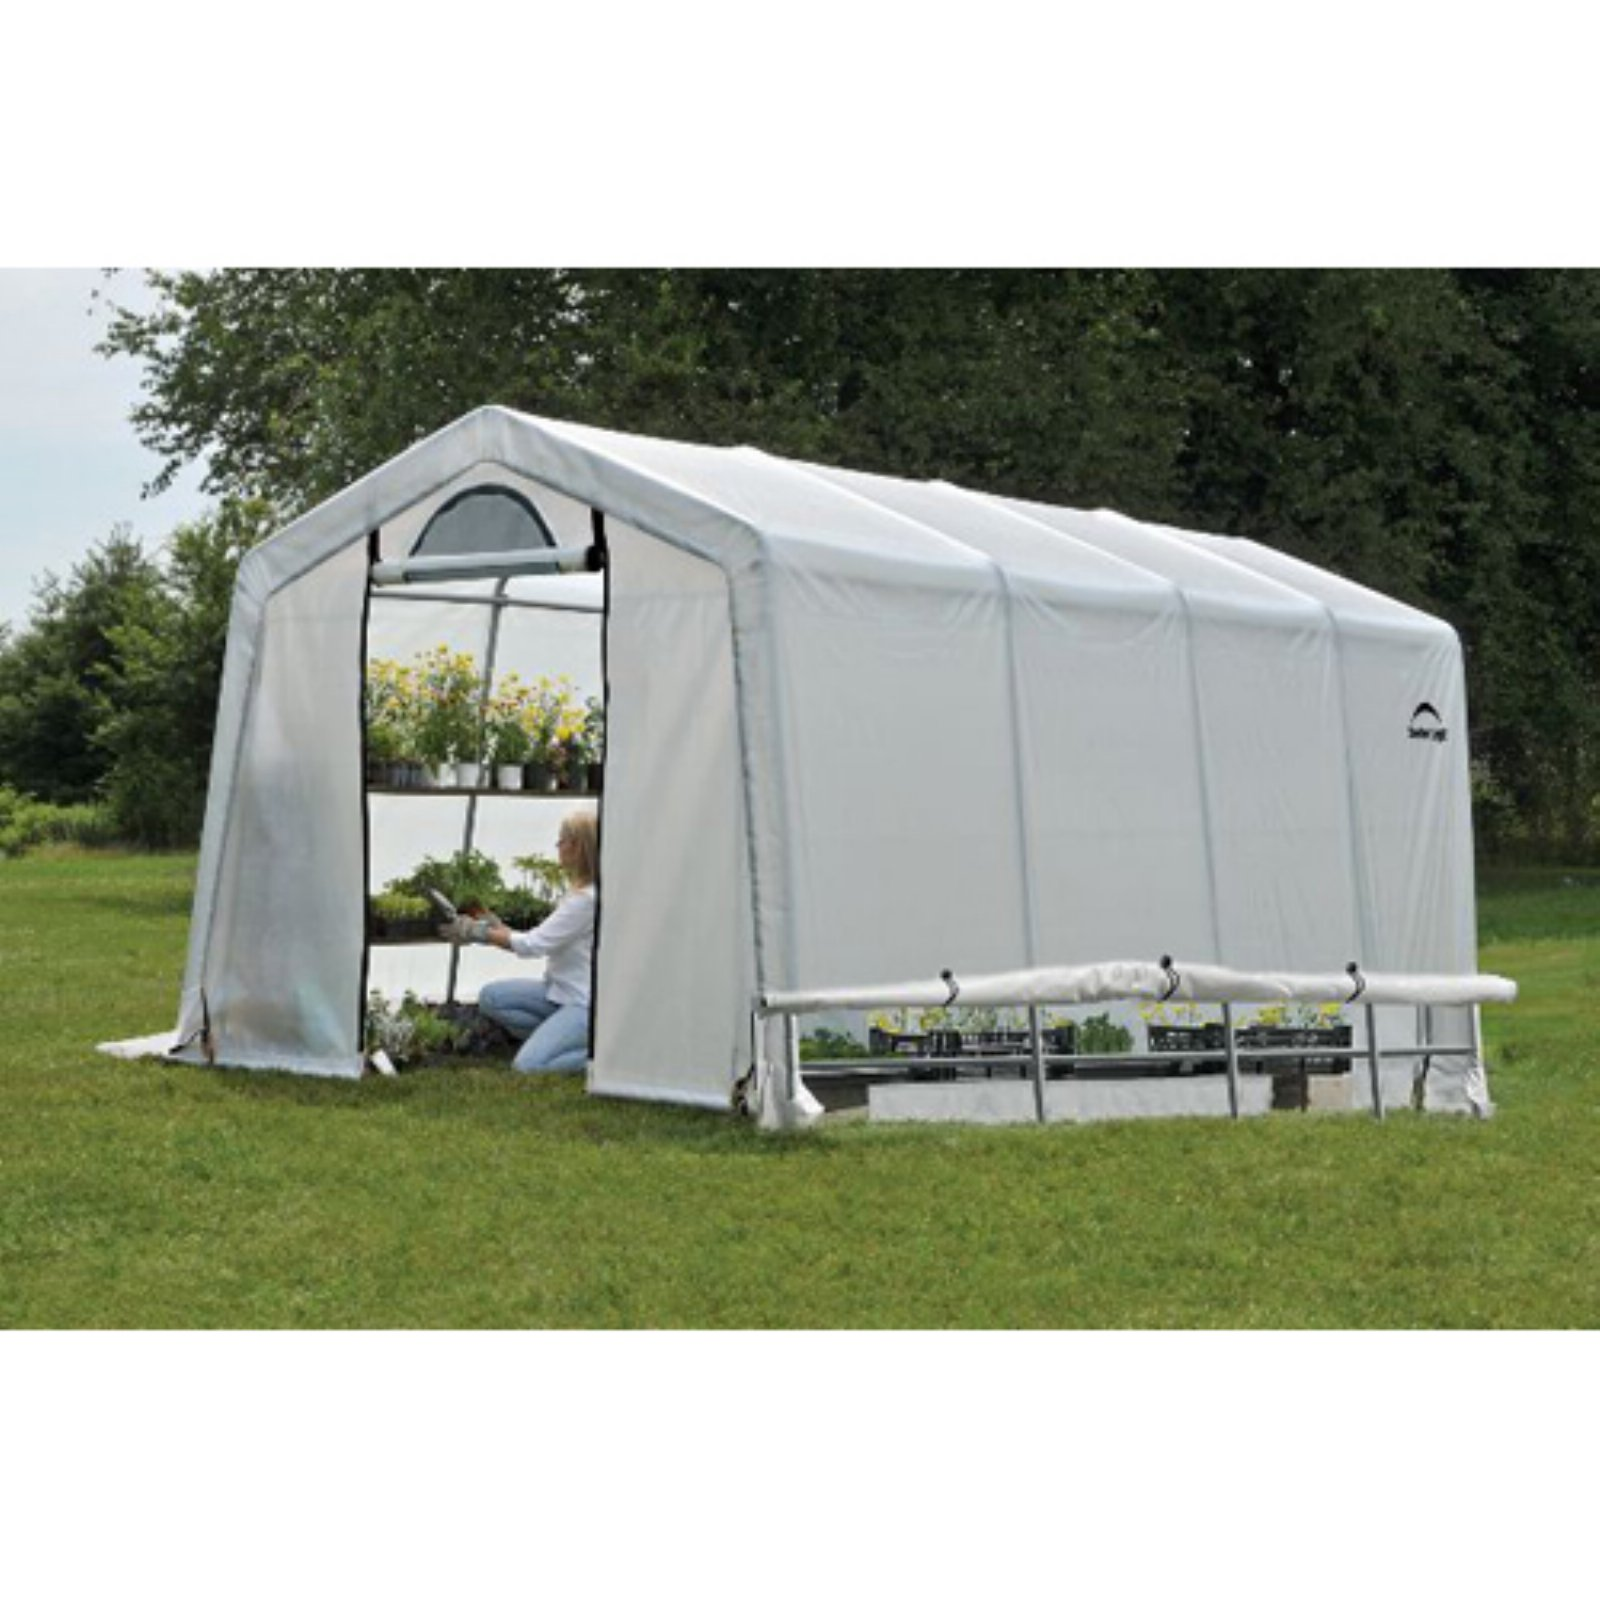 GrowIt Greenhouse-In-A-Box Easy Flow Greenhouse Peak-Style, 10' x 20' x 8'